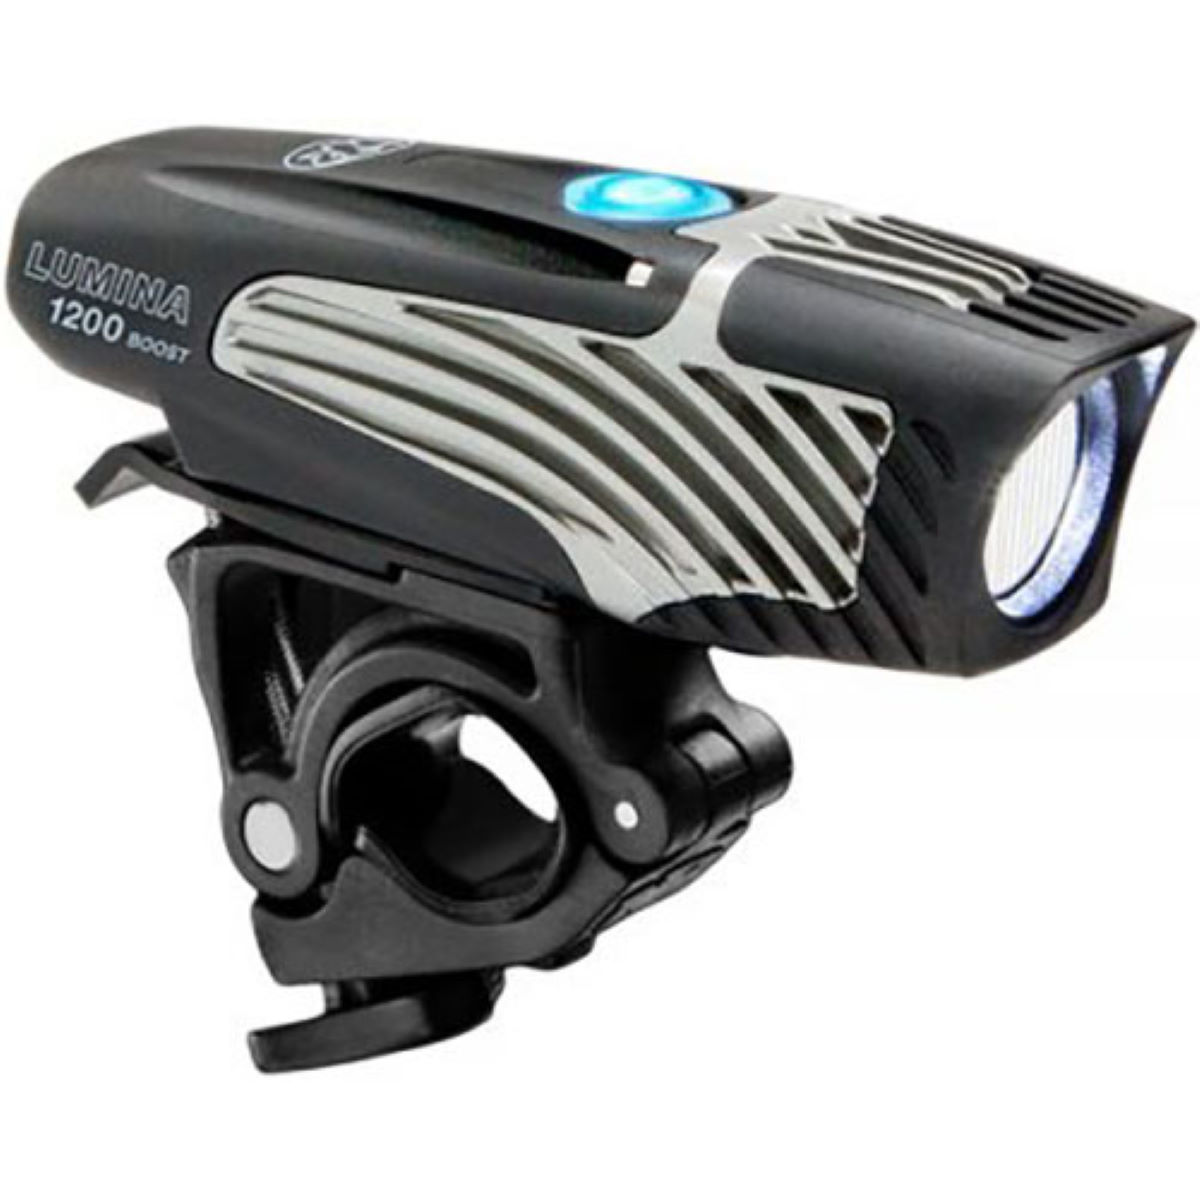 NiteRider Lumina 1200 Boost Front Light - Luces delanteras